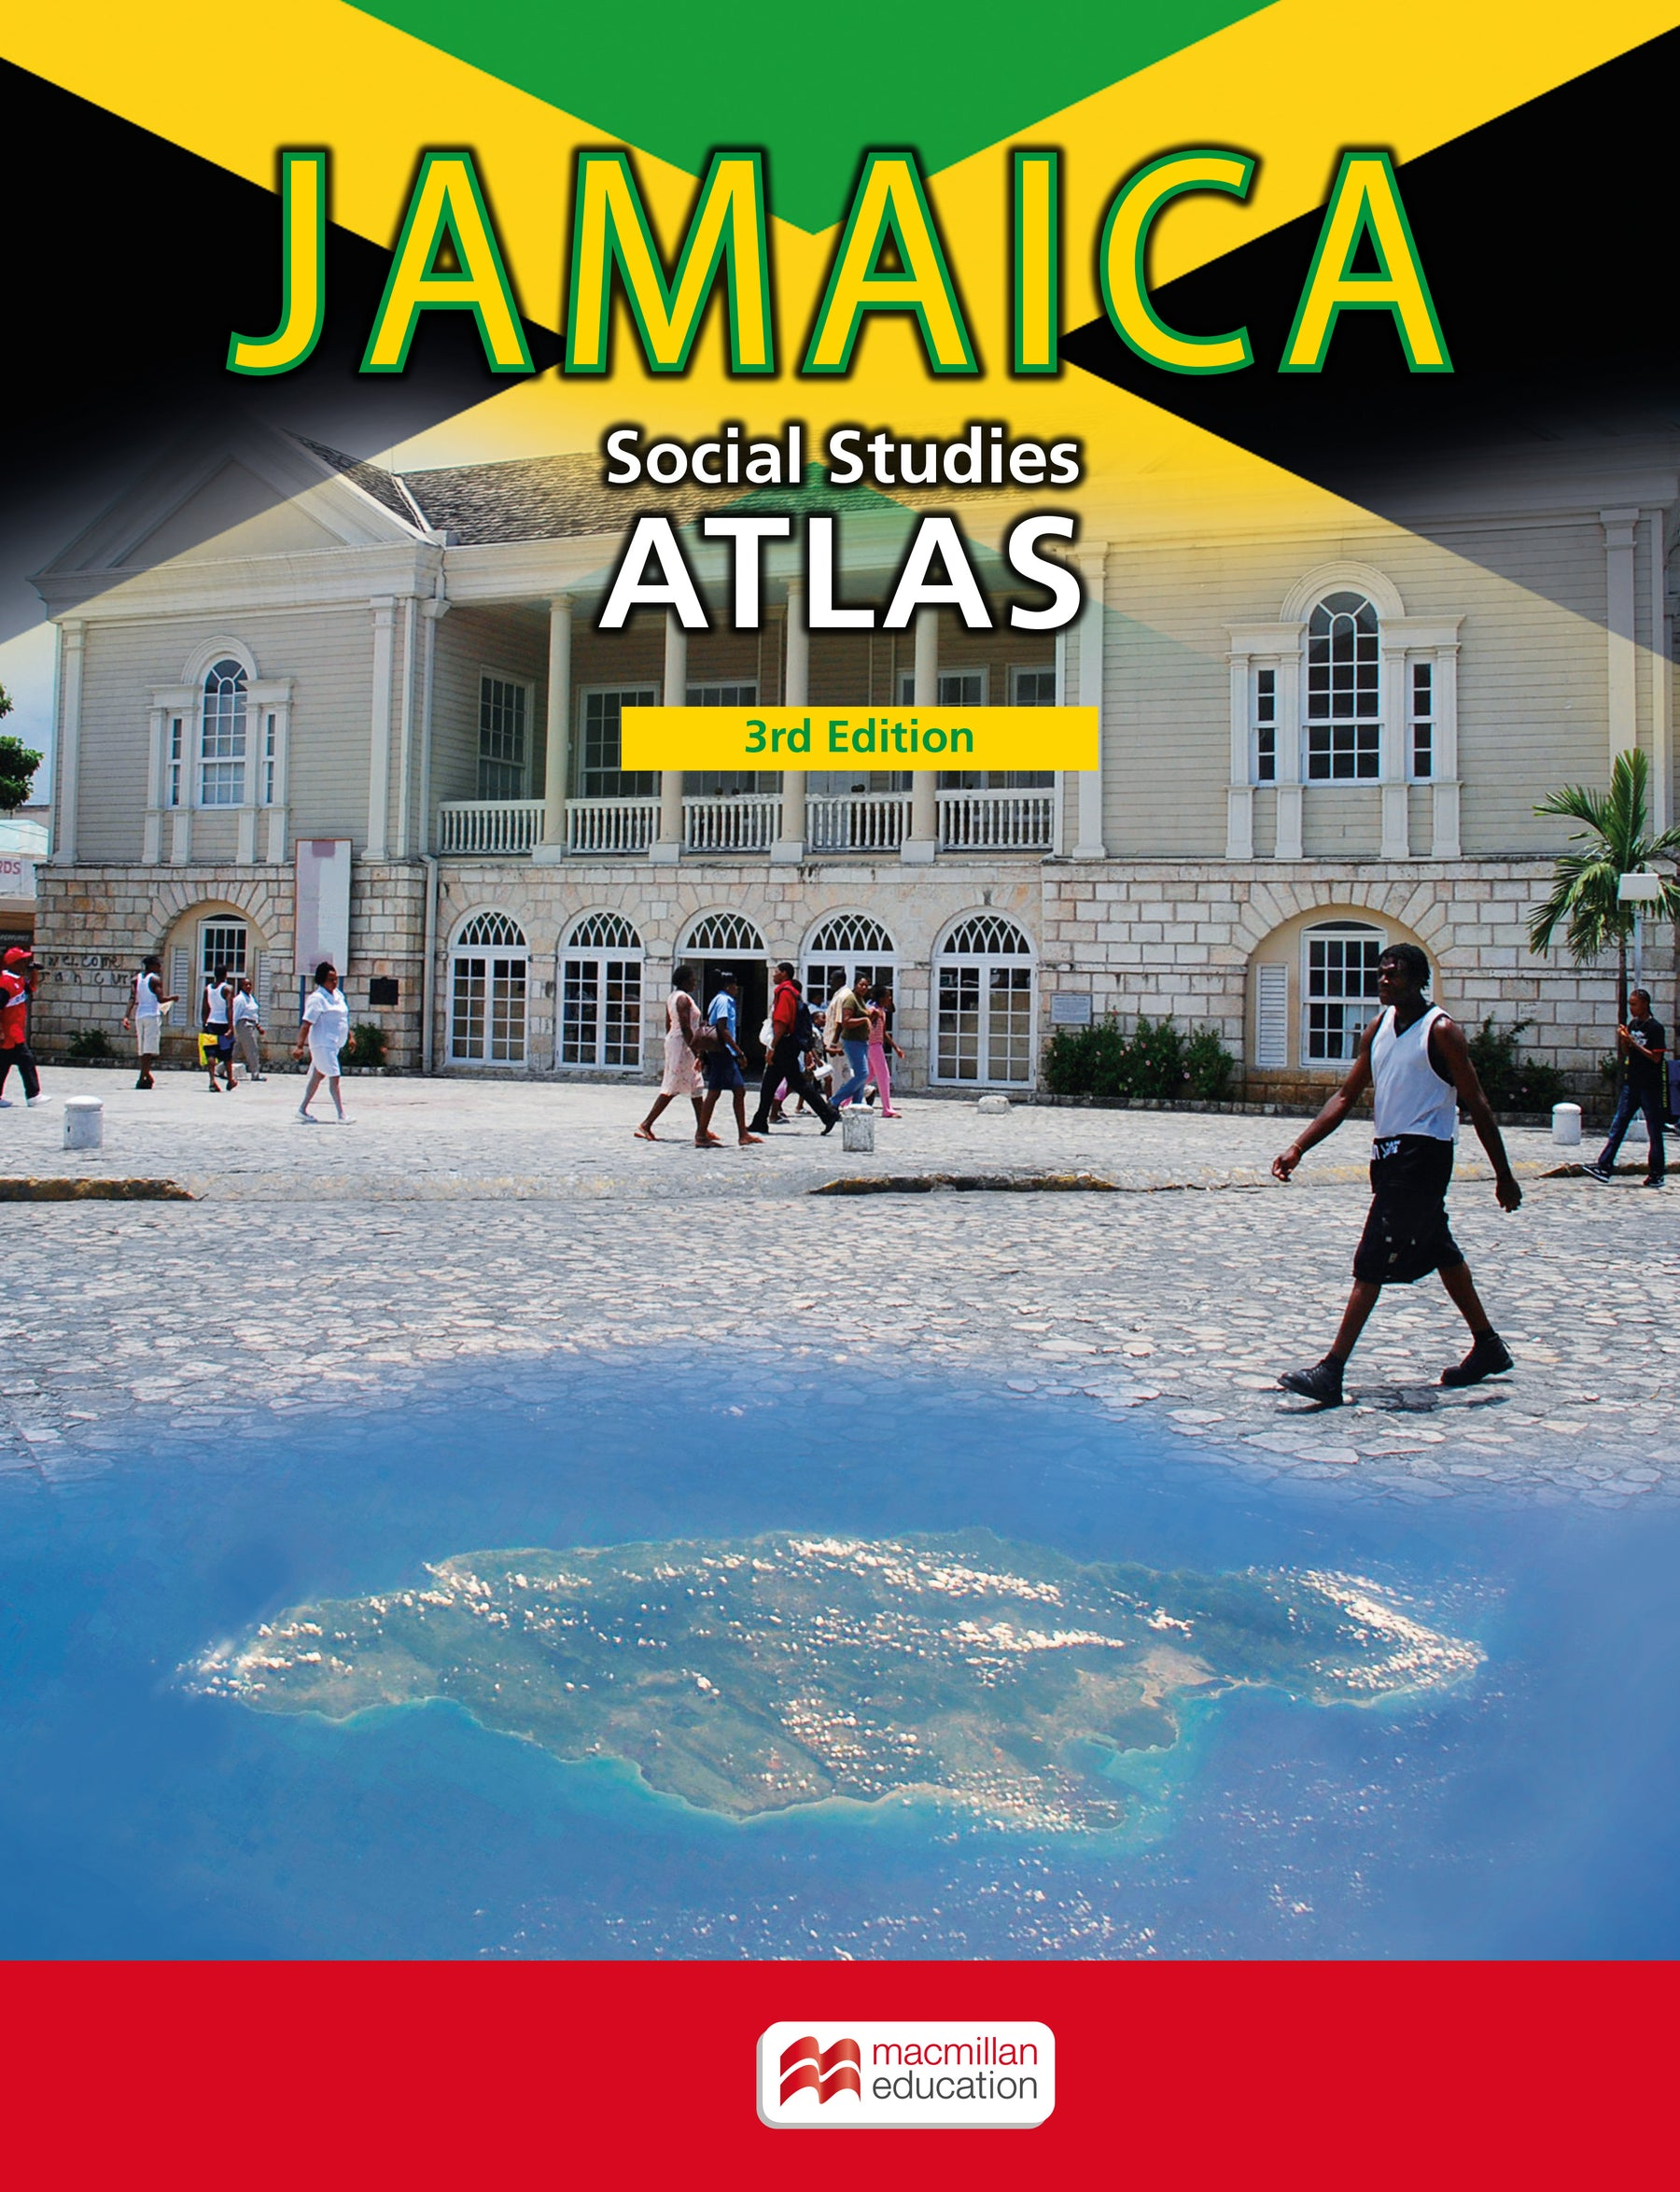 Jamaica Social Studies Atlas, Third Edition